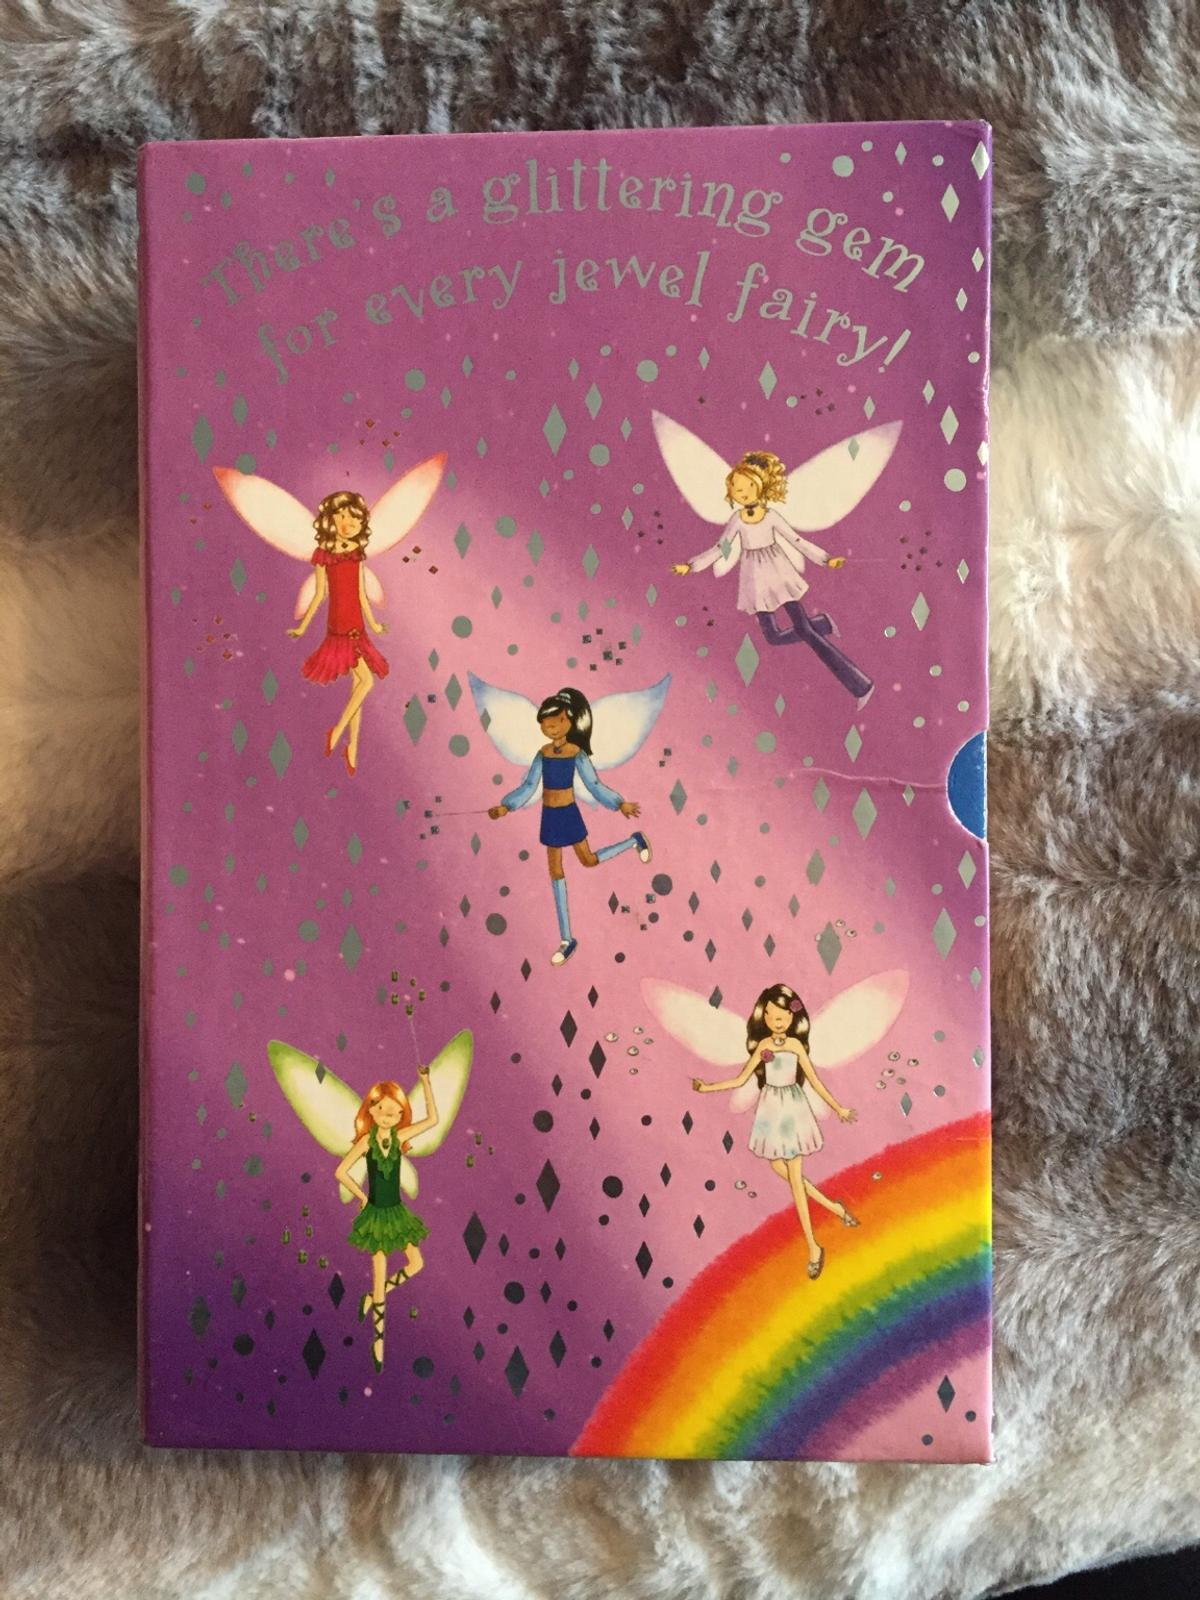 Rainbow magic- The fairy stories collection in N20 London